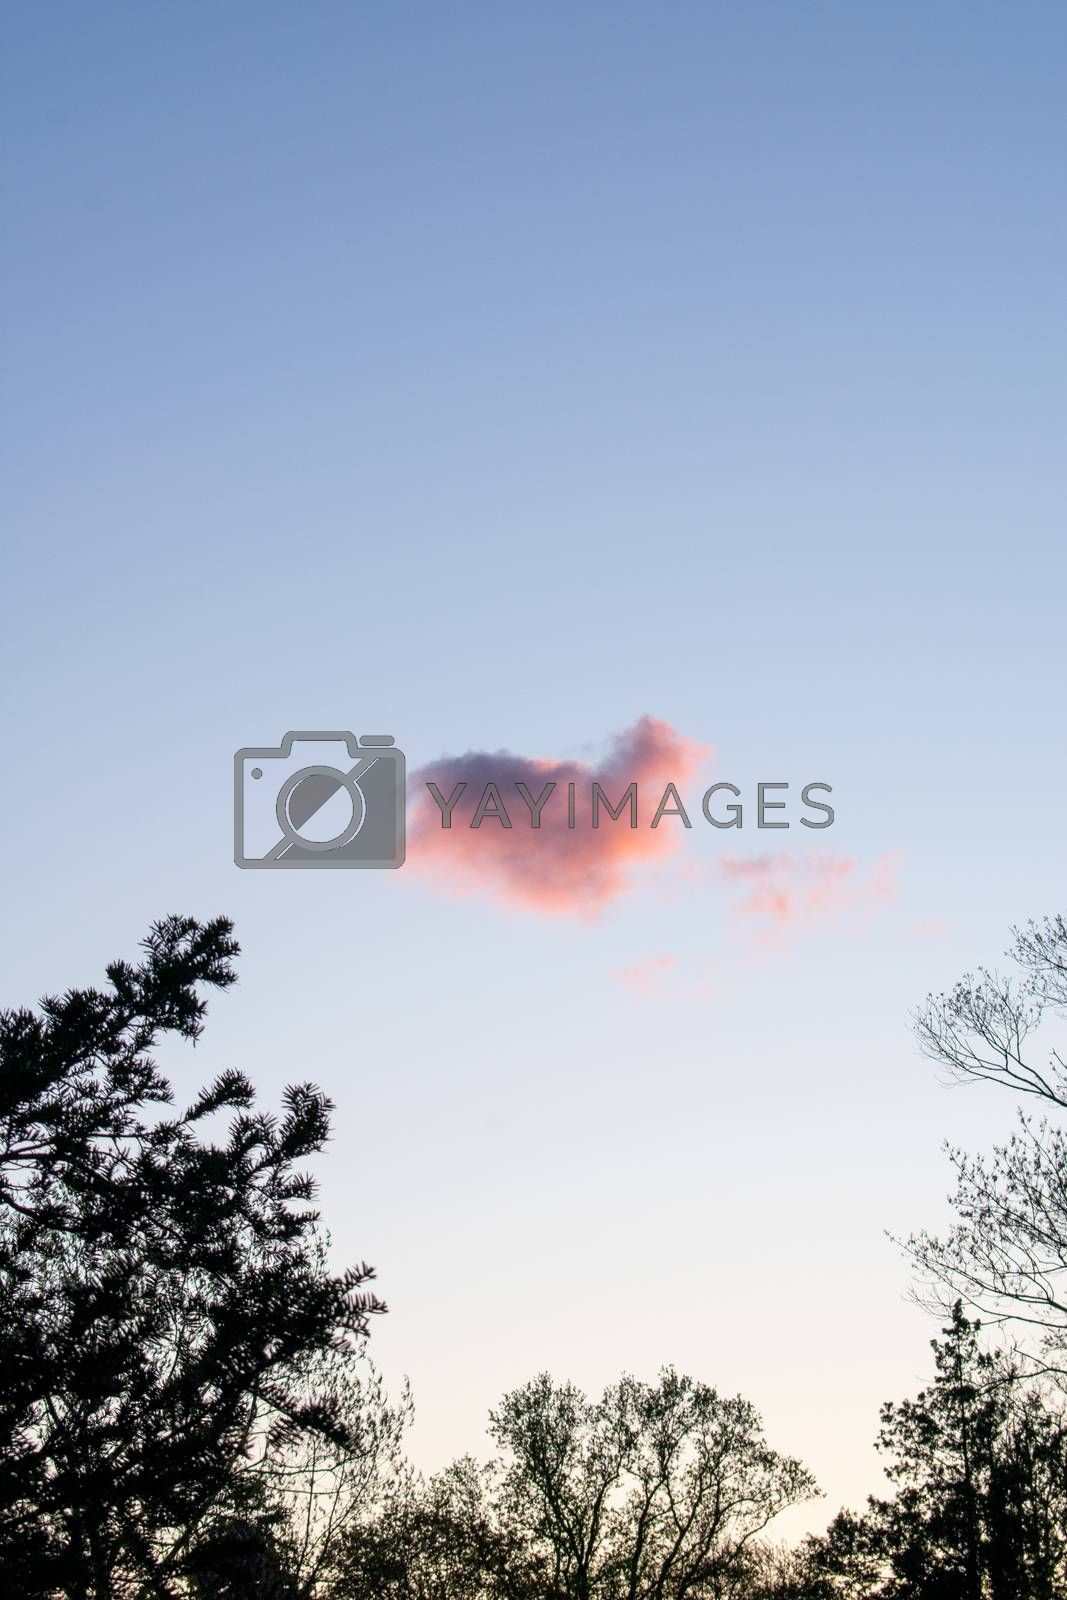 A Heart Shaped Pink Cloud on a Clear Blue Sky With Trees Around the Frame